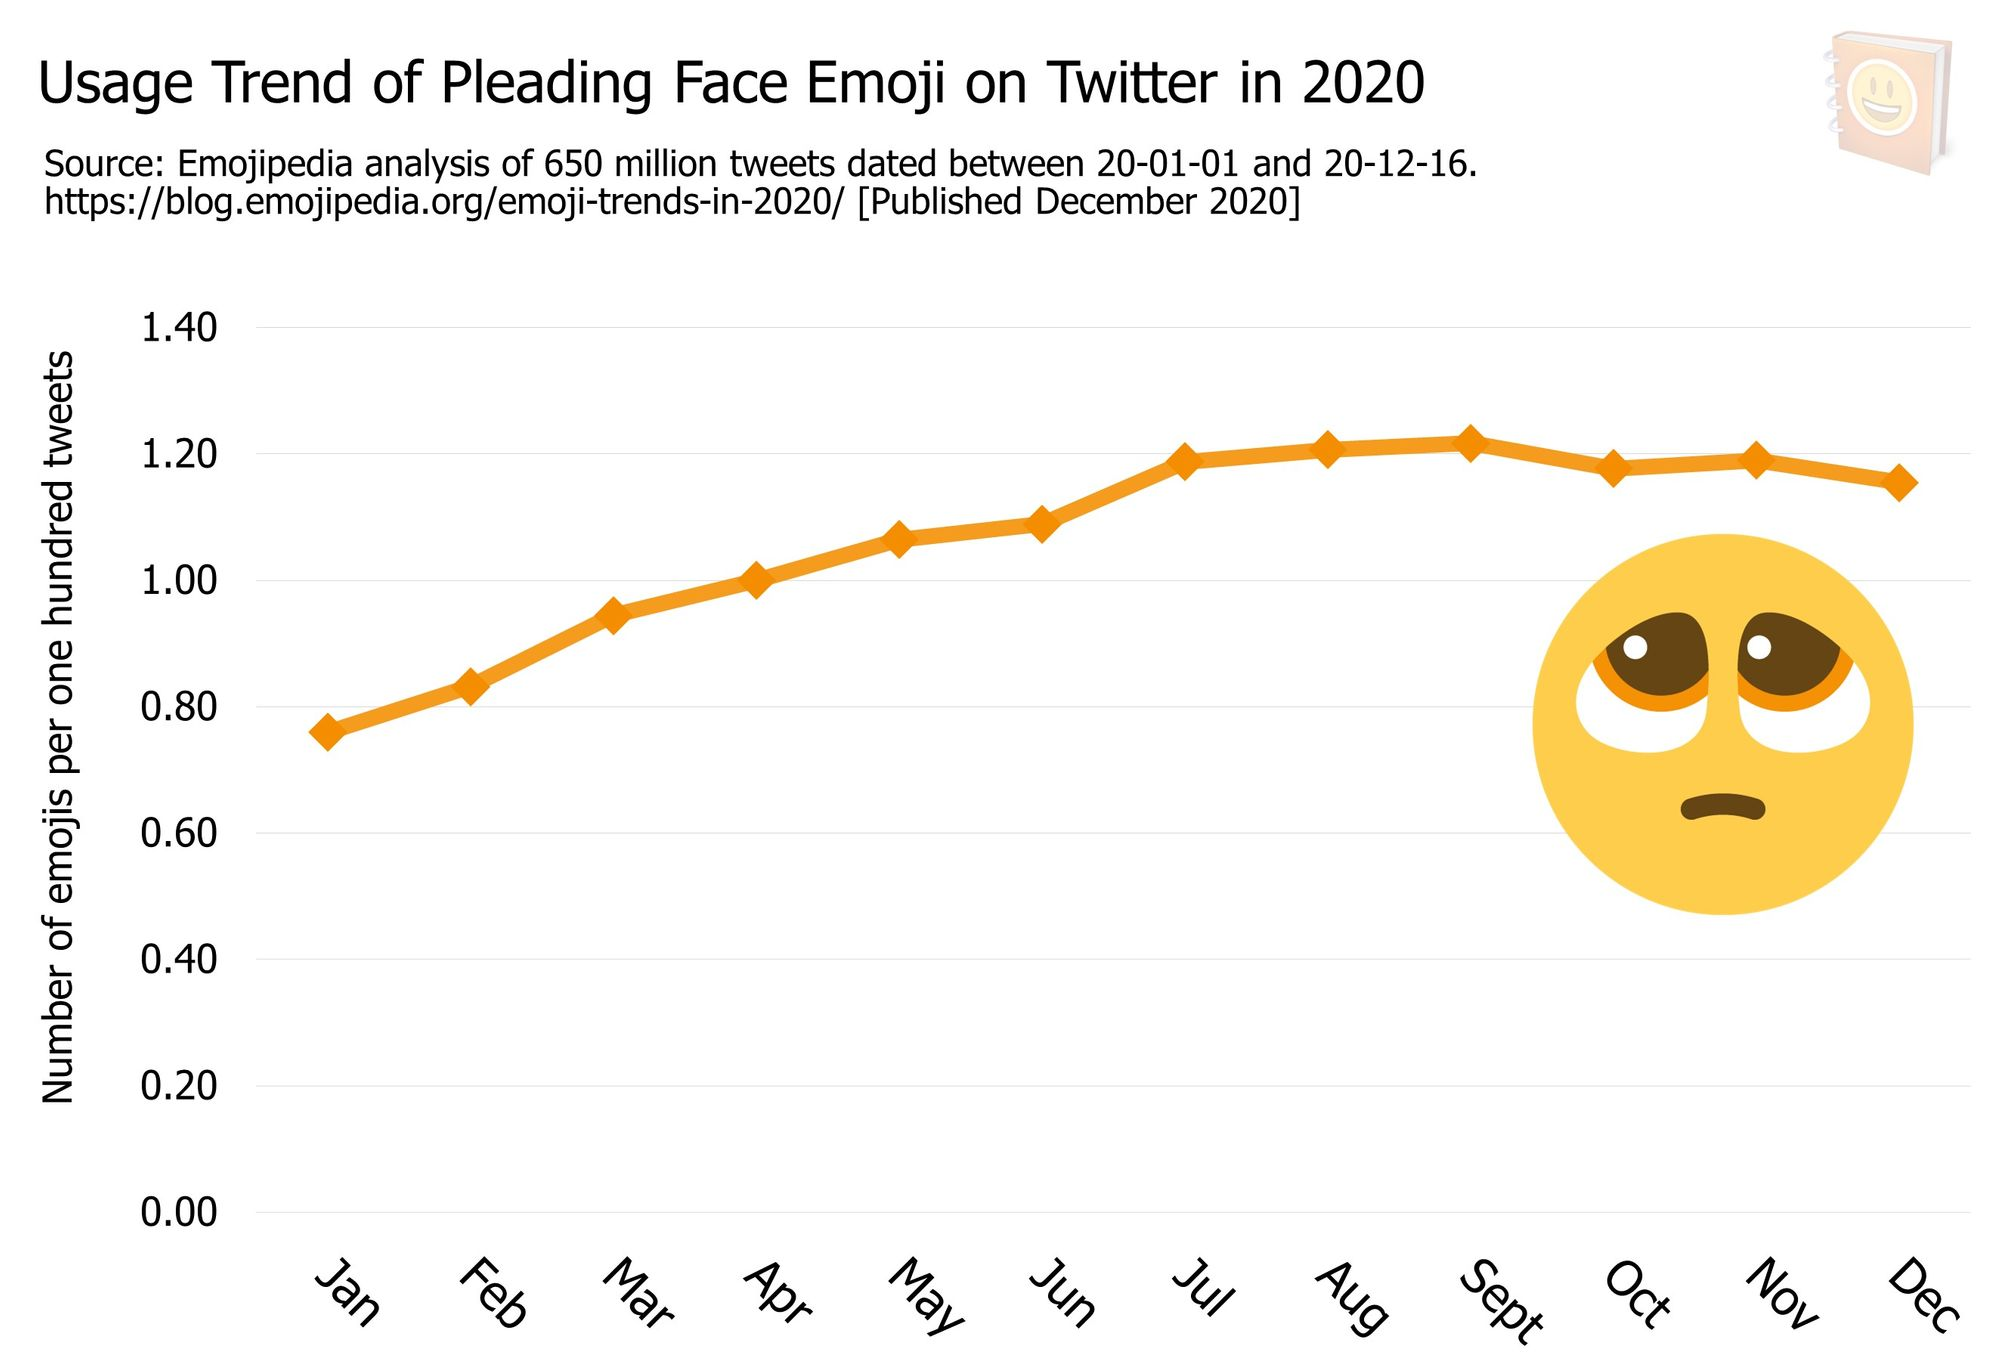 Emoji-Trends-In-2020---Emoji-Trends-In-2020---Usage-Trend-of-Pleading-Face-Emoji-on-Twitter-in-2020